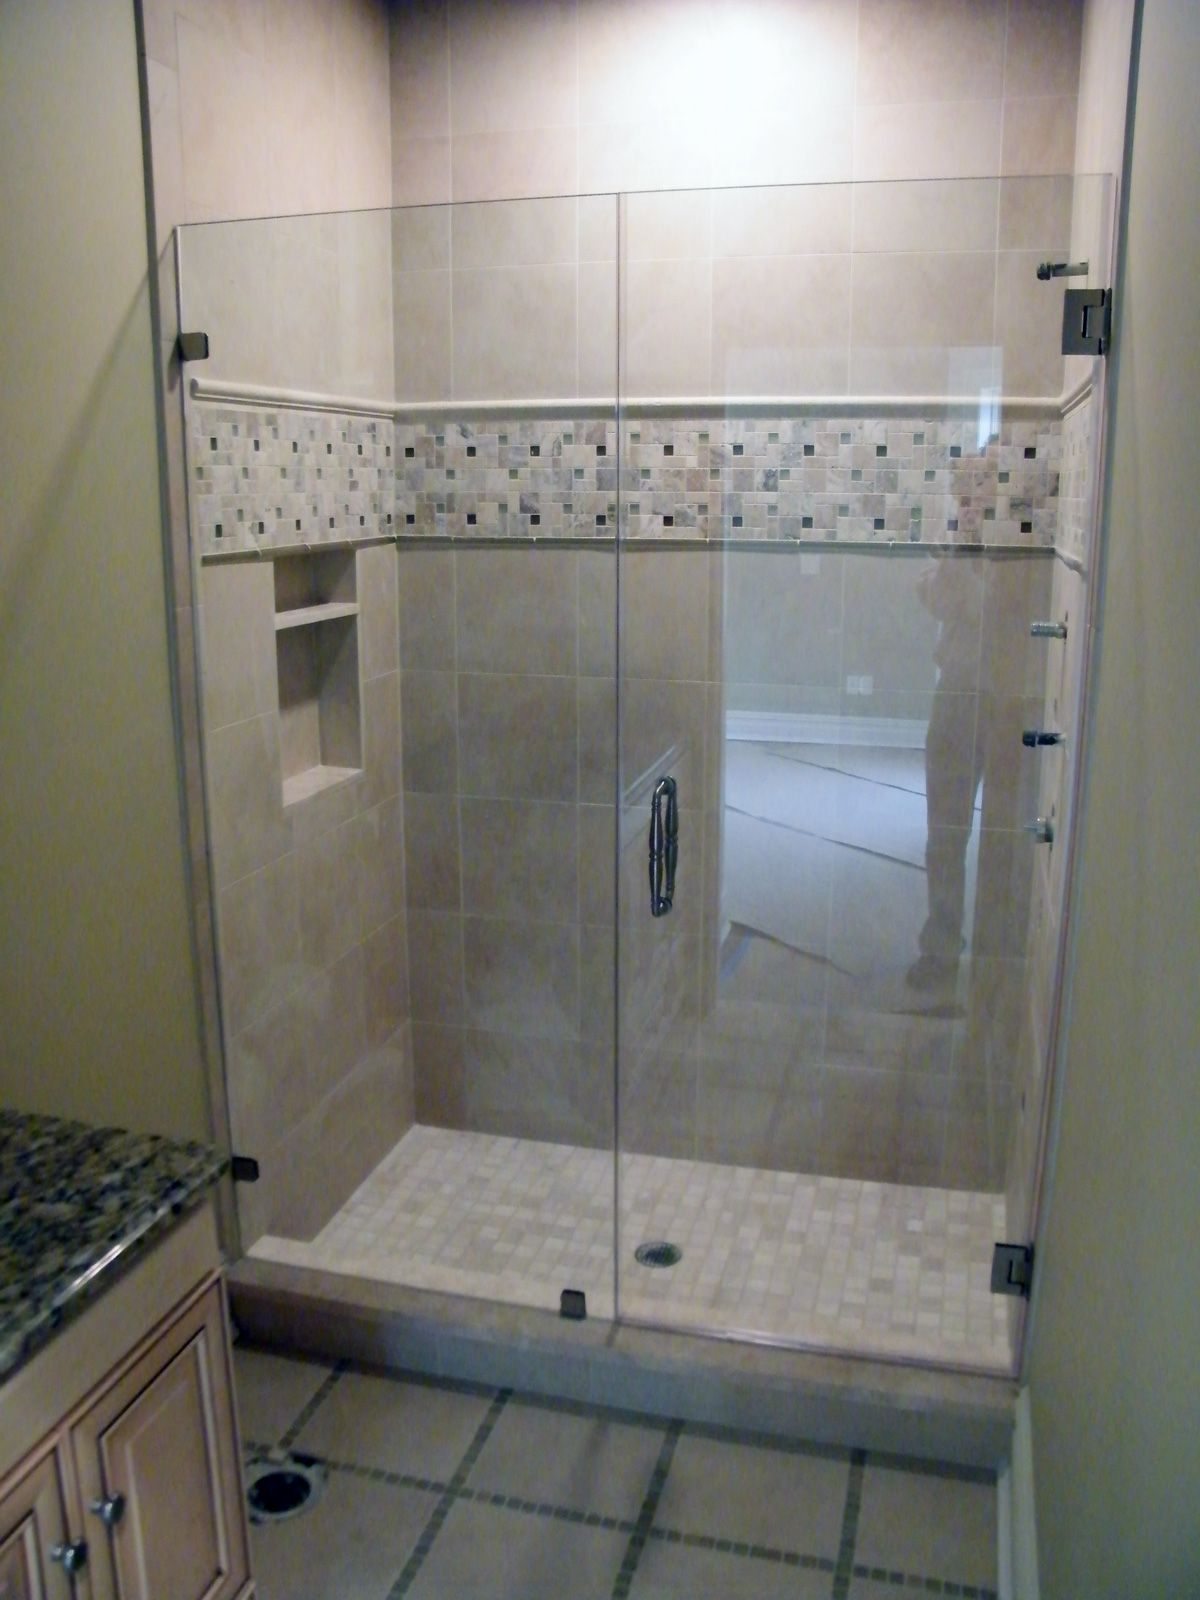 Bathroom shower doors frameless - Glass Shower Enclosures Frameless Is A Headrail Necessary For Your Frameless Shower Manalapan